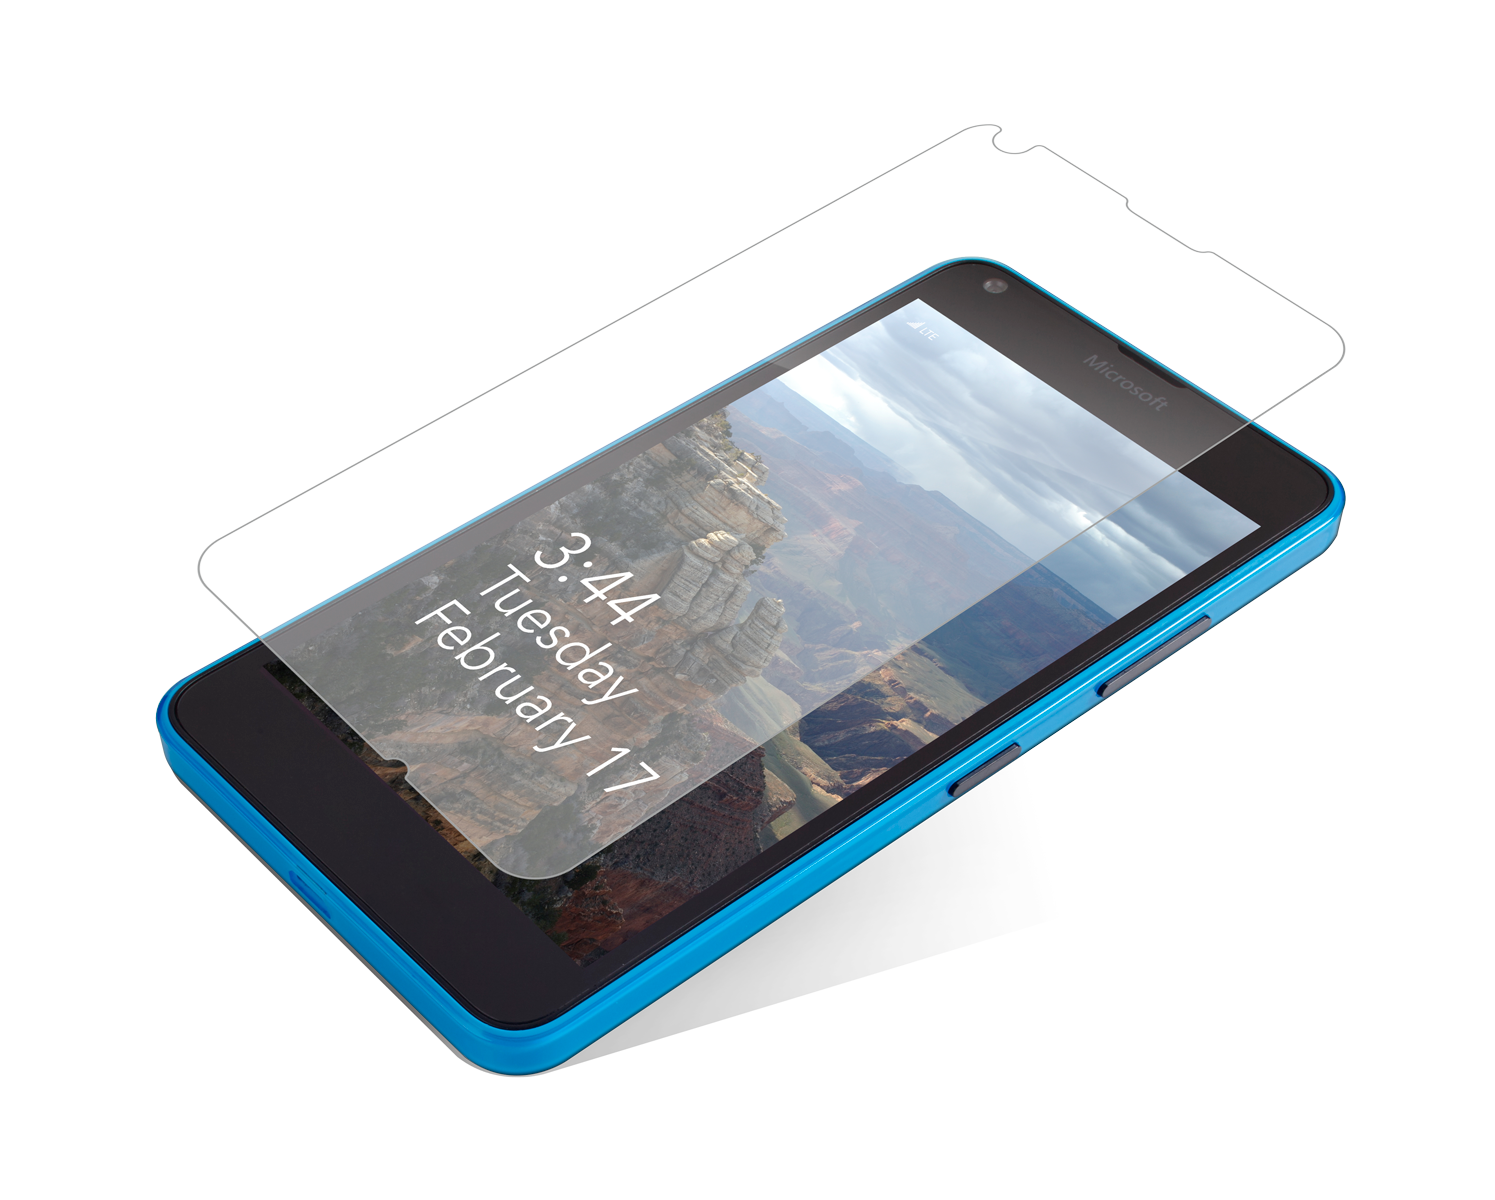 InvisibleShield Original for the Microsoft Lumia 640